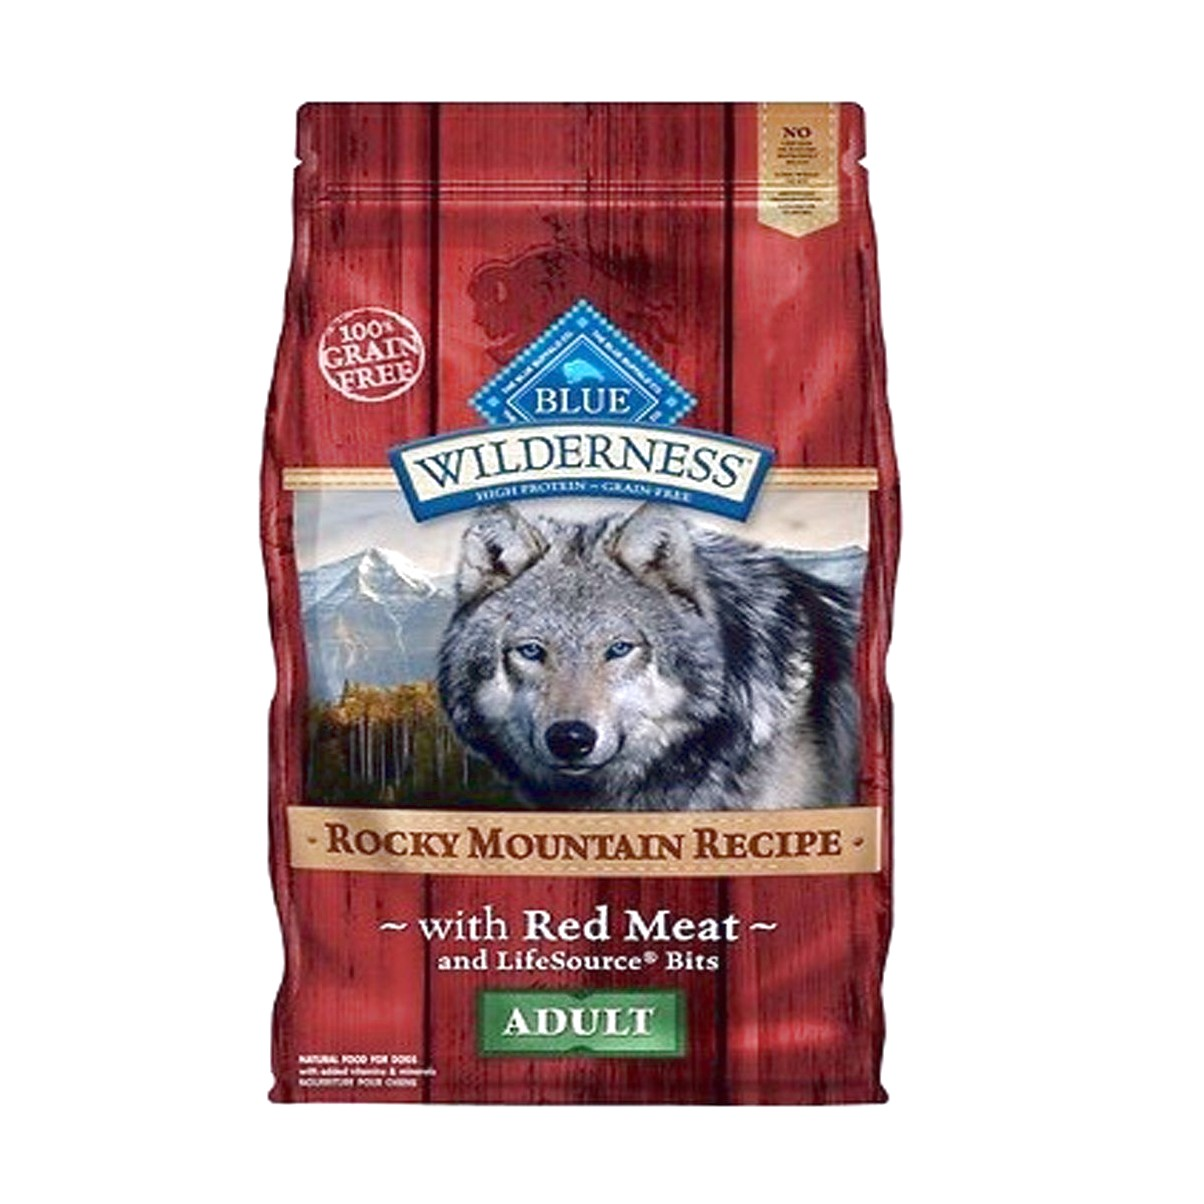 Blue Mountain Dog Food